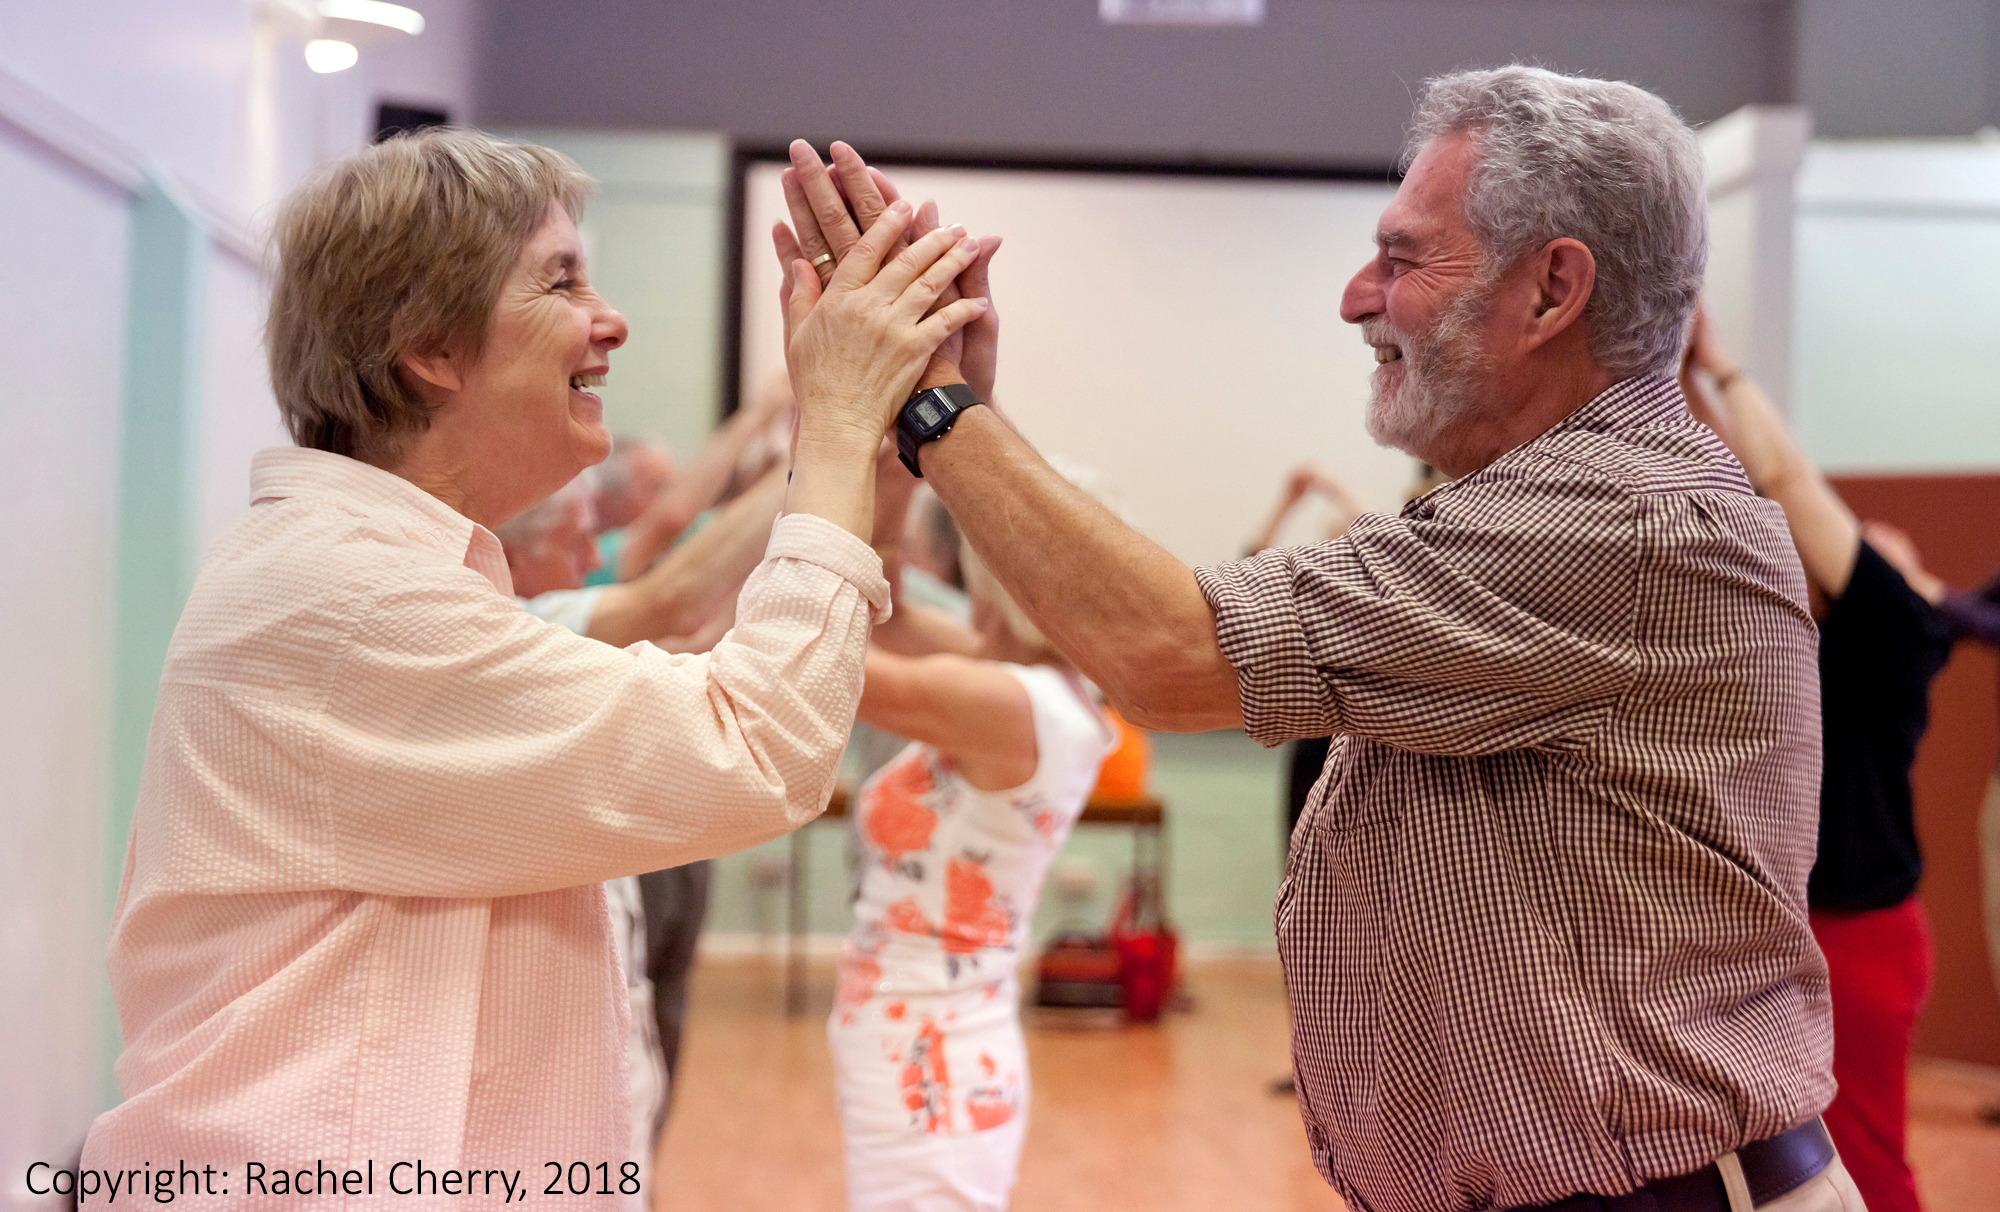 Image - Dr Sara Houston publishes new book, Dancing with Parkinson's